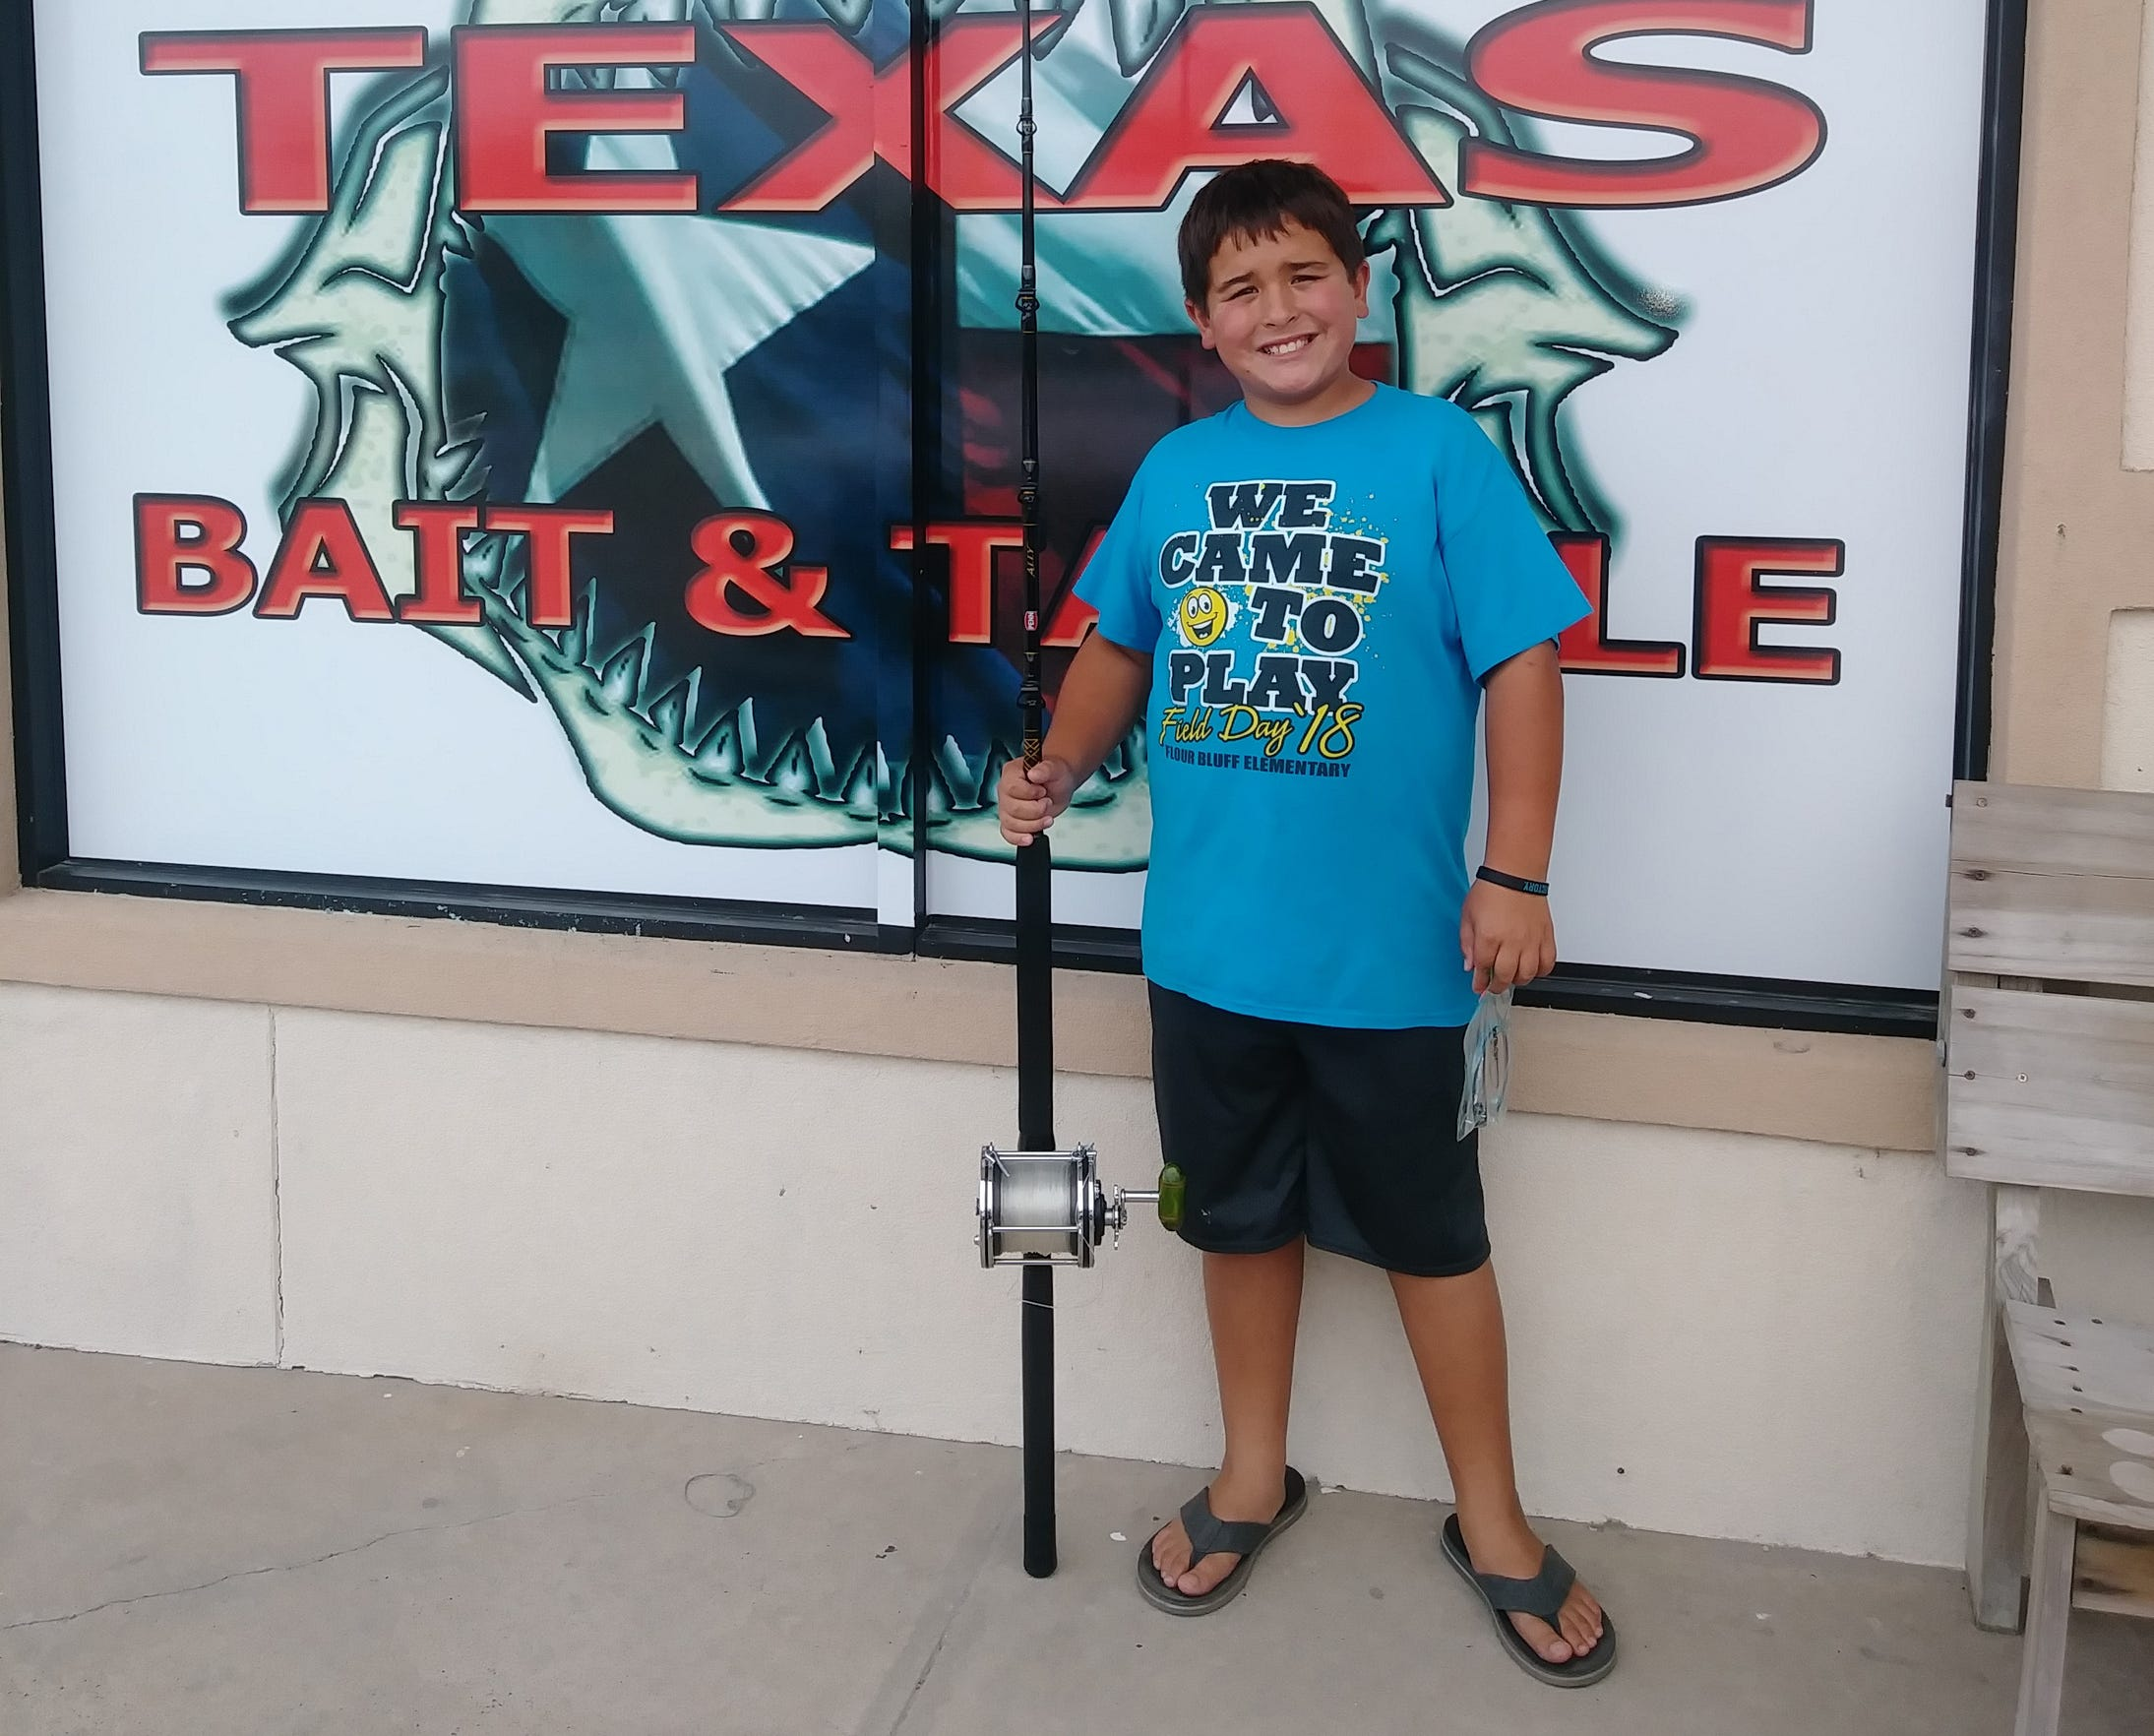 Jacob said he enjoys surf fishing the most, but also likes to fish offshore and from the jetties.